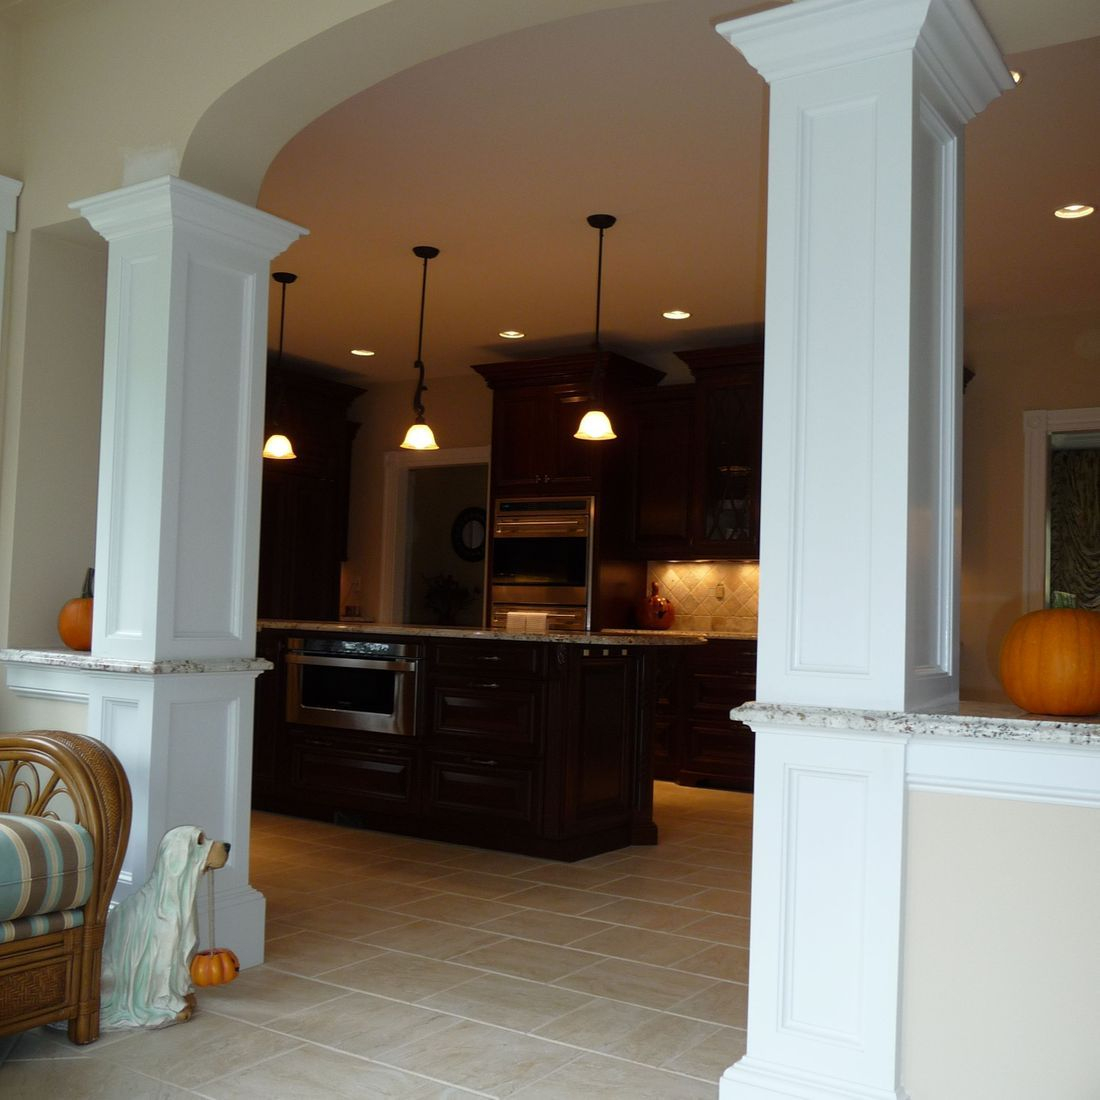 custom kitchen archway with columns